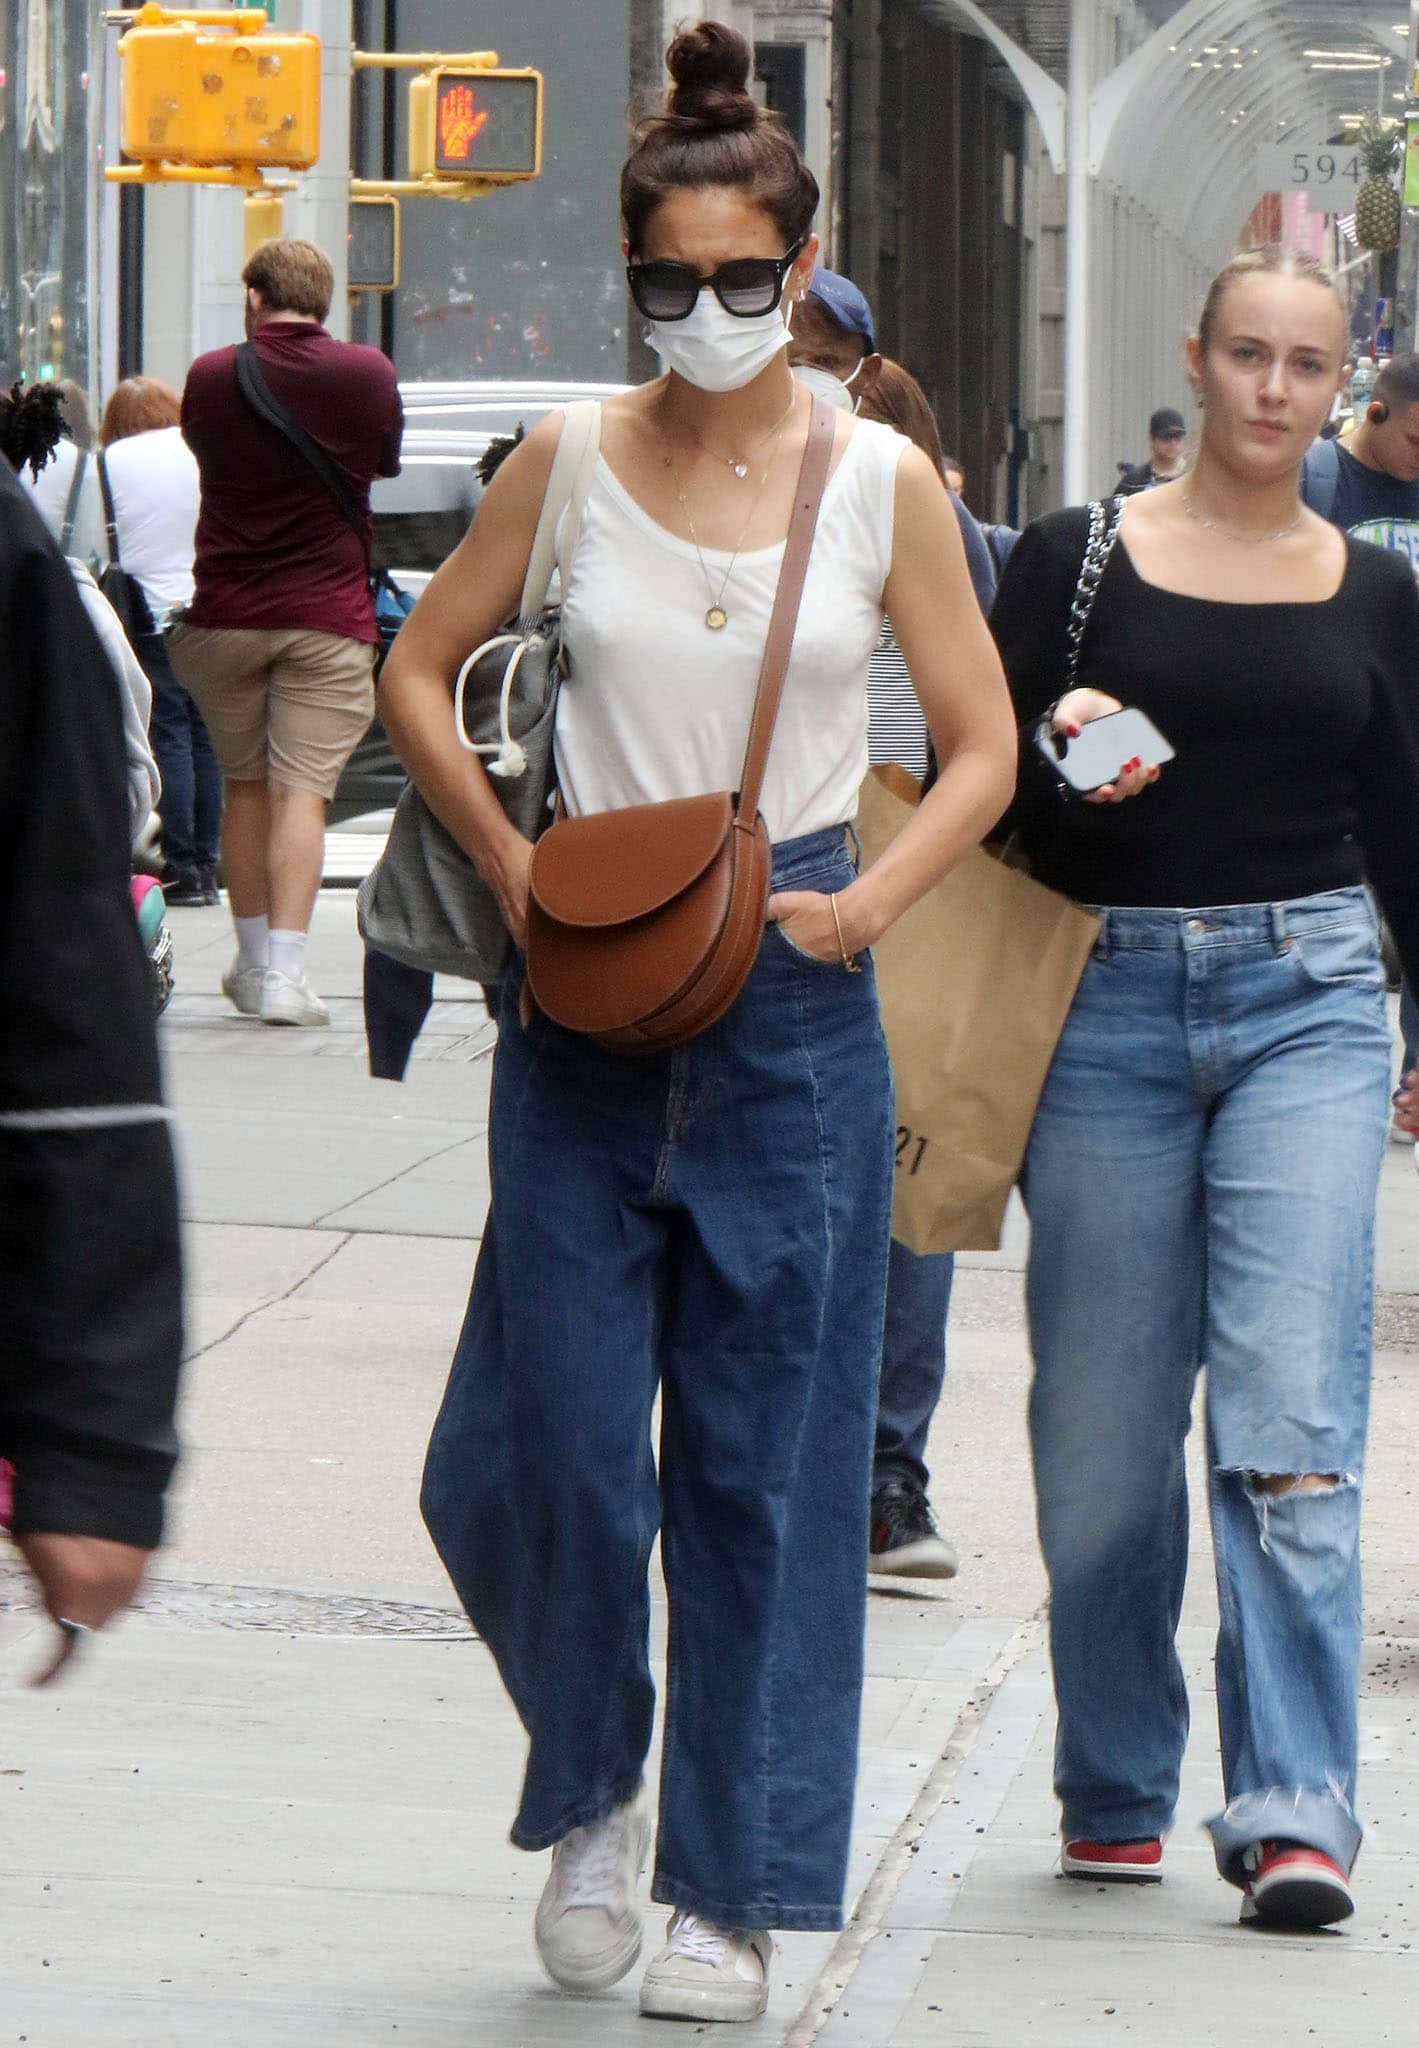 Katie Holmes' summer outfit includes an off-white tank top and a pair of baggy denim jeans